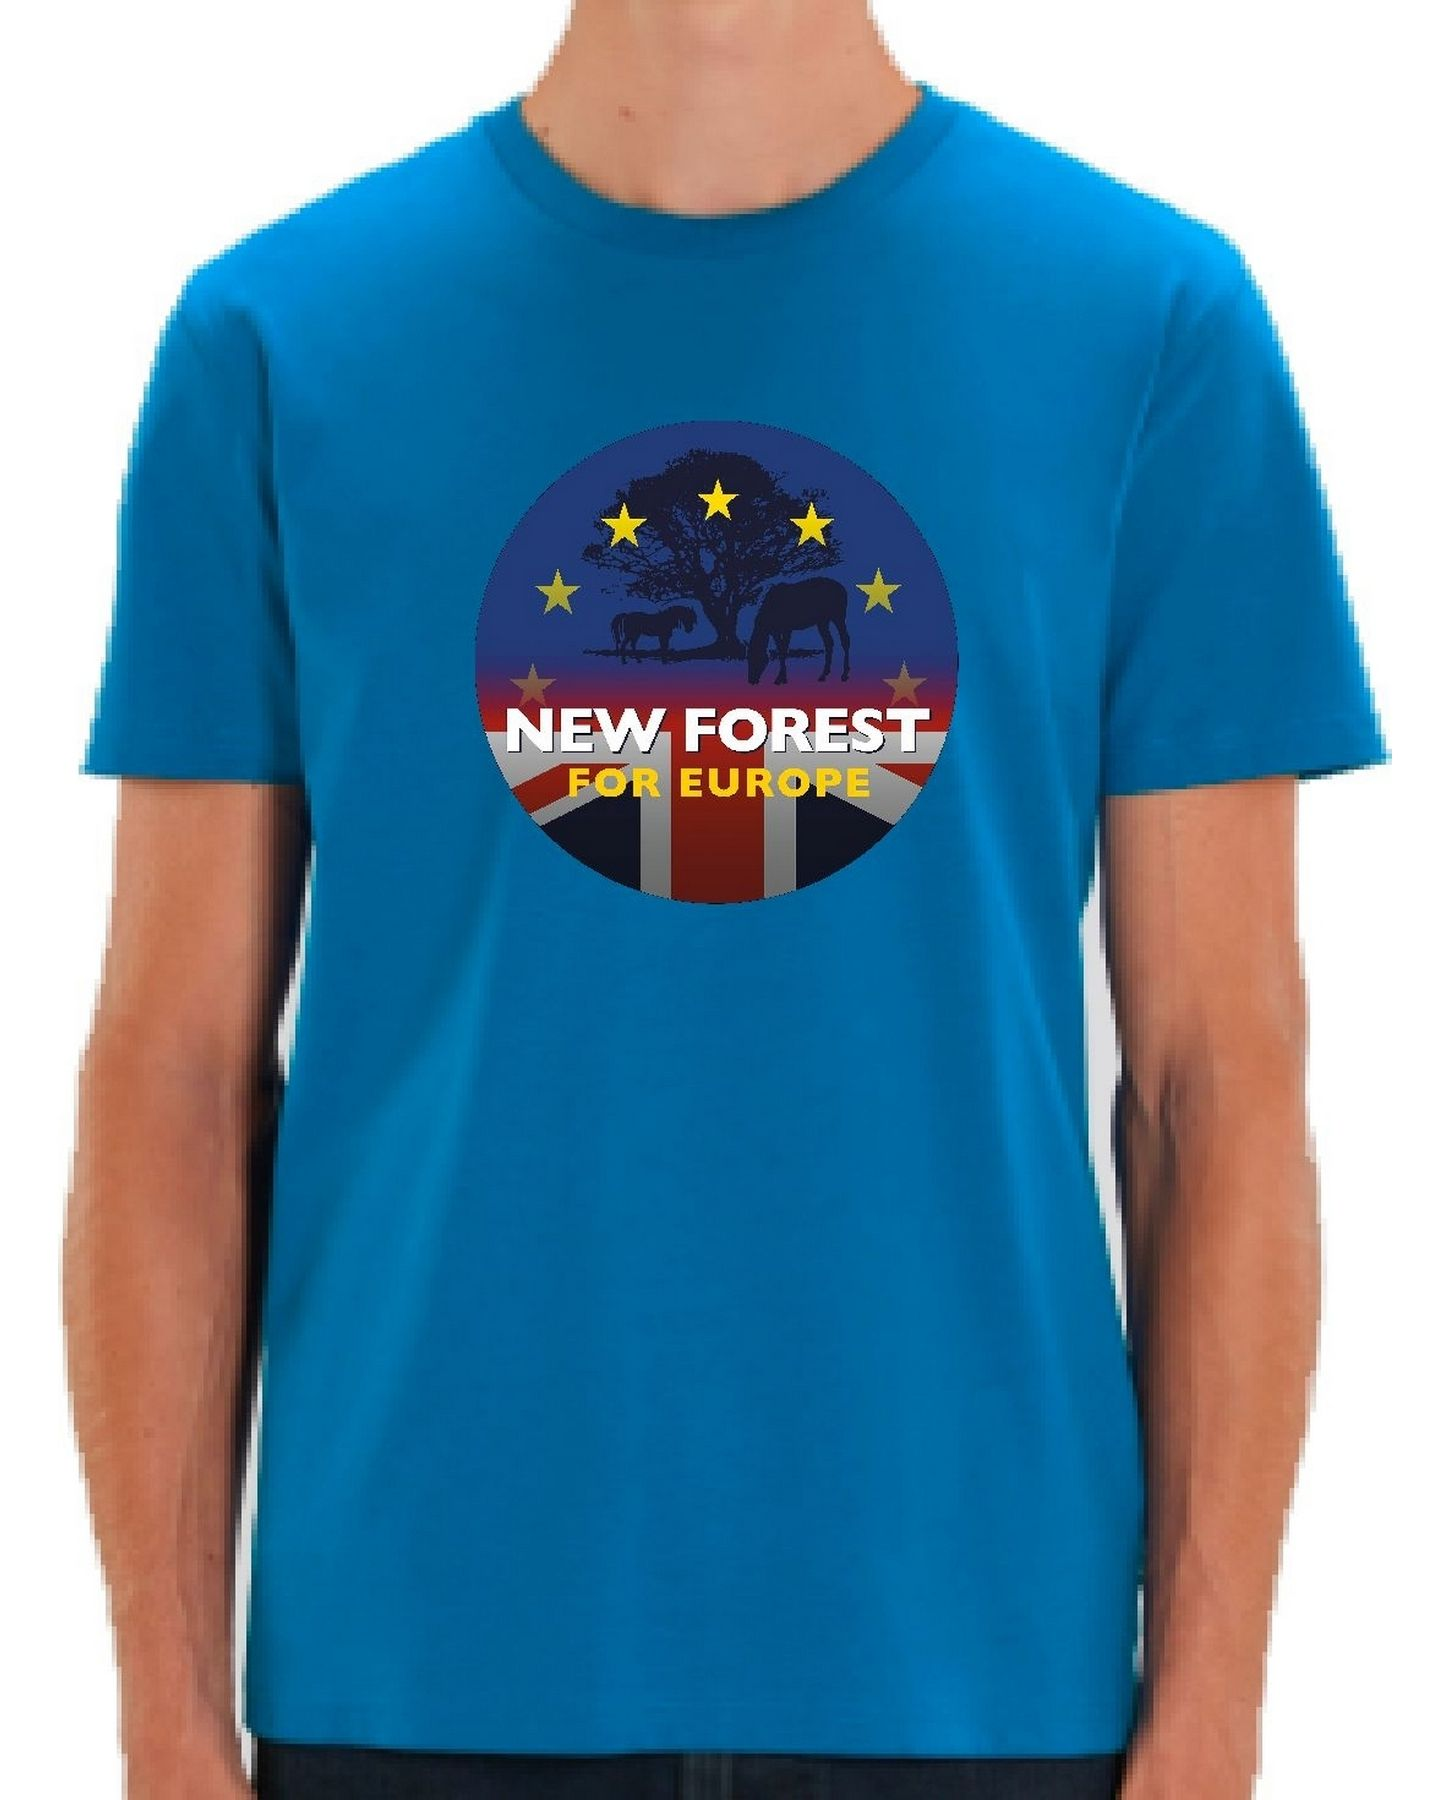 New Forest for Europe – Tee (Unisex)